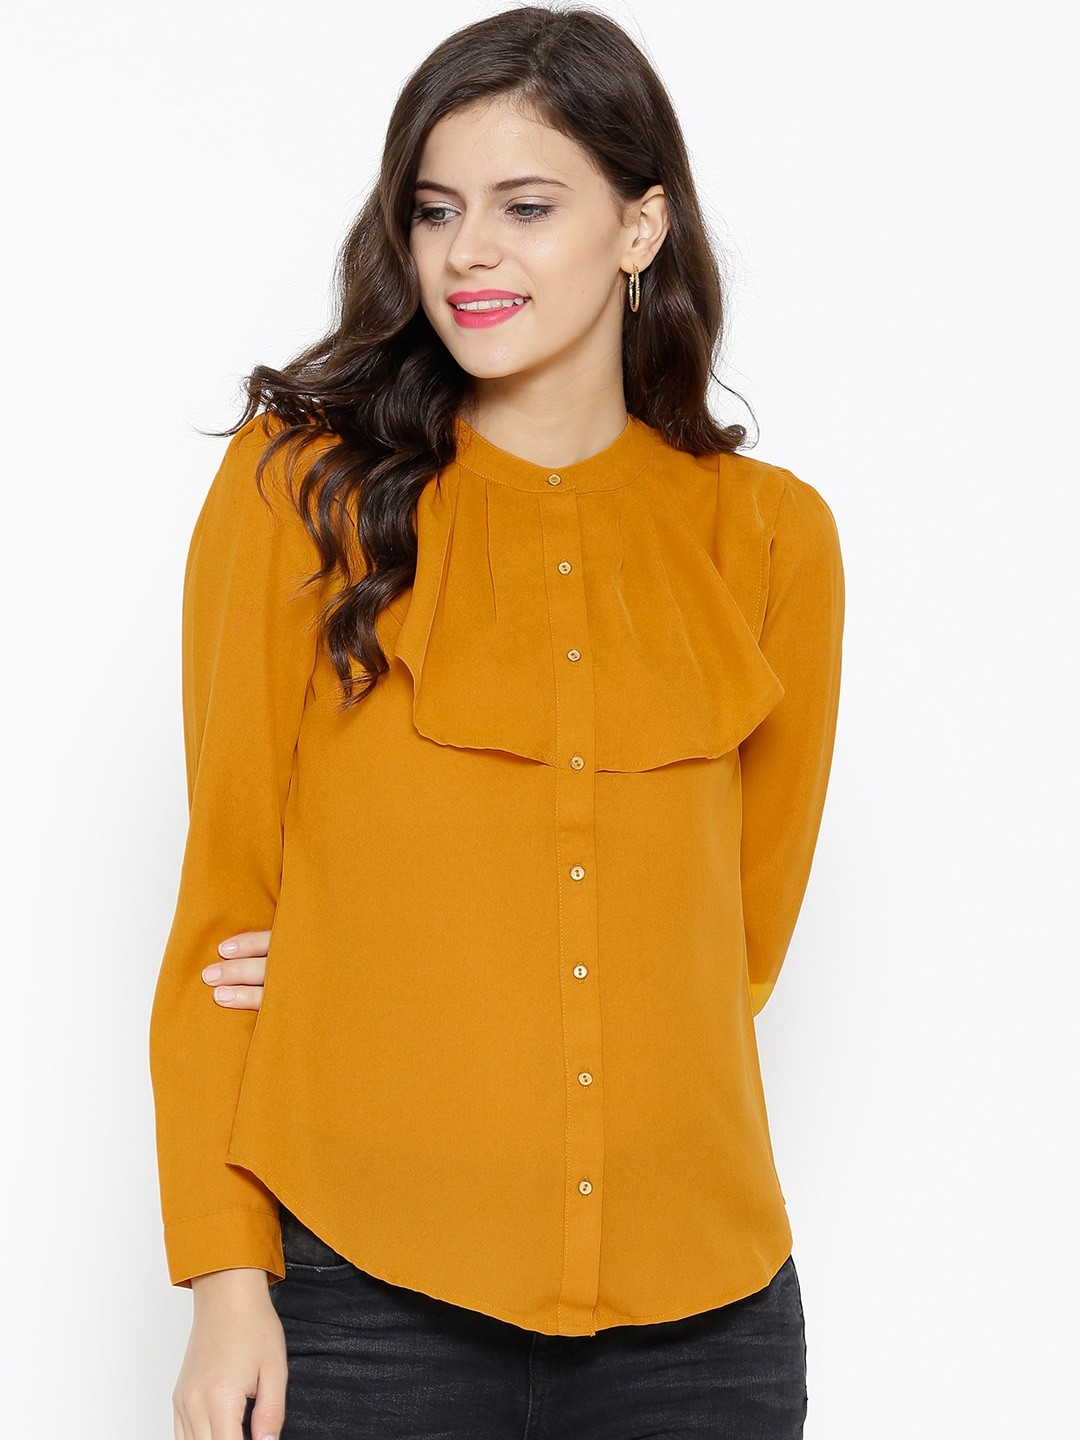 Top 10 fashionable yellow shirts for men and women for Shirt styles for ladies